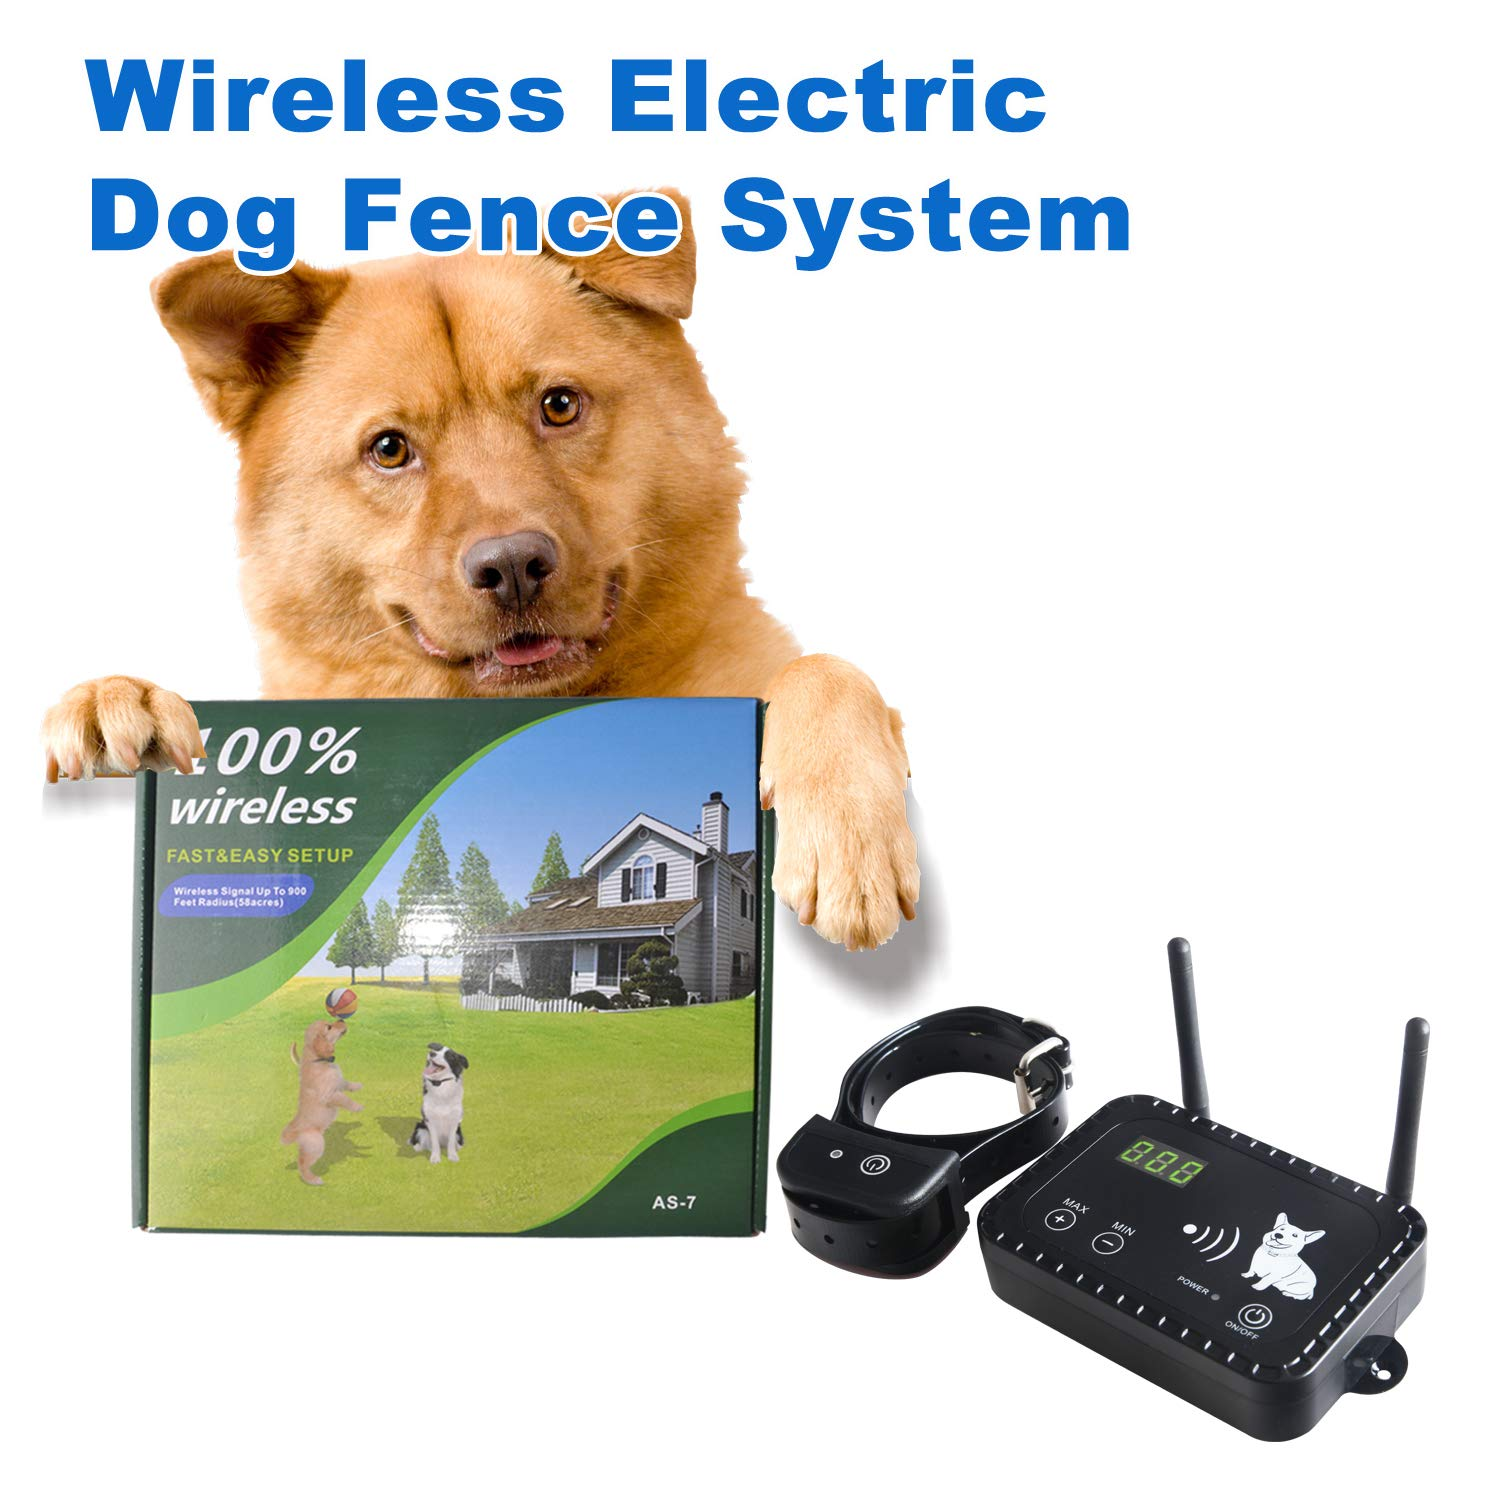 Dog Wireless Fence Pet Electric Containment System, Safe Effective Anti Over Shock Design, Adjustable Range Up to 900 Feet & Display Distance, Rechargeable Waterproof Collar Receiver (1 Dog System)